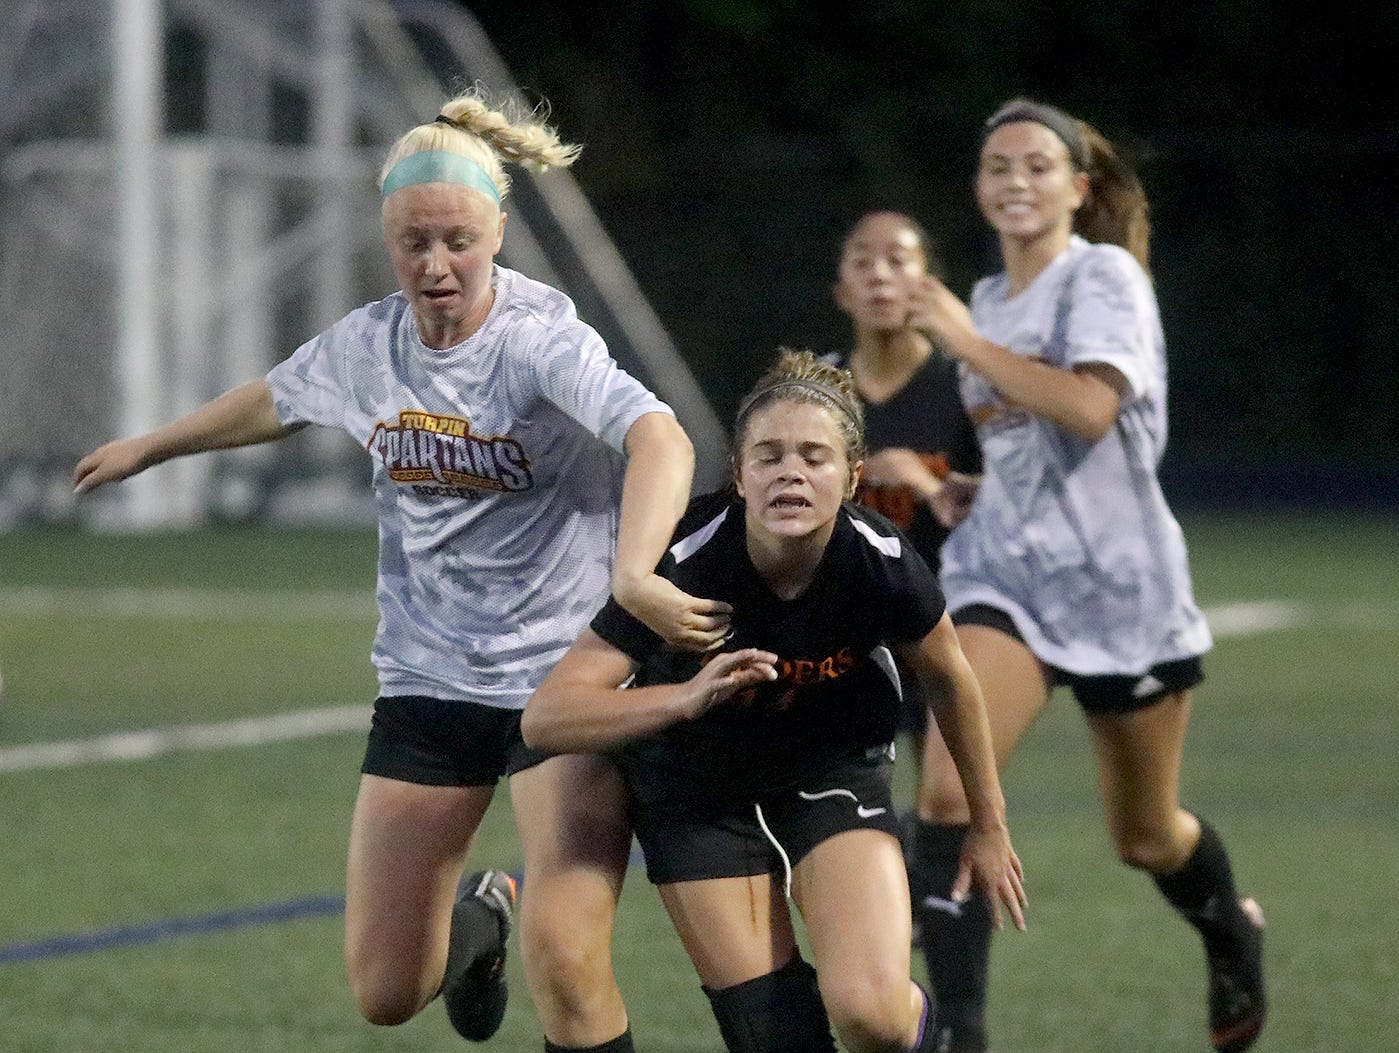 Ryle's  Kylee  Fountain (14) battles a Turpin player against during Soccerama, Saturday, Aug. 11,2018.